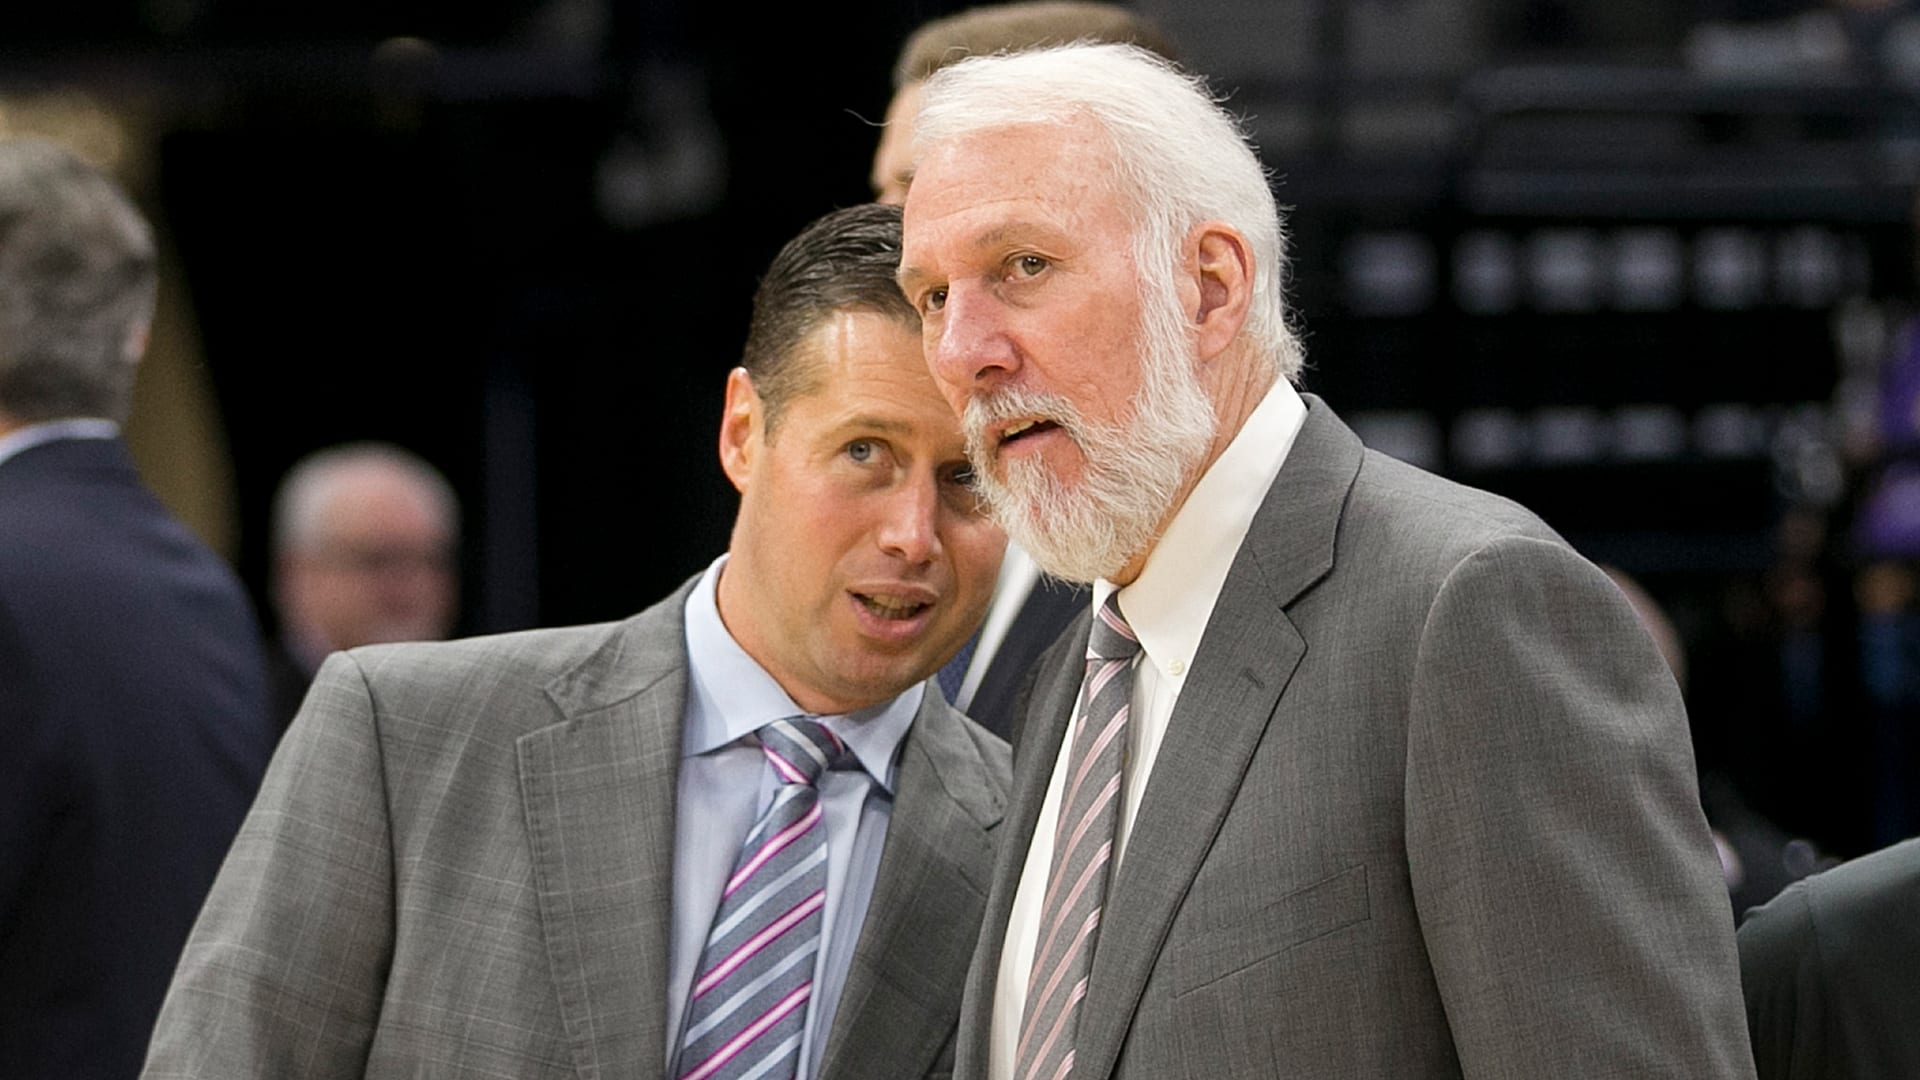 Spurs Coach Gregg Popovich Says Its Up To White People To Call Out Racism 'No Matter What The Consequences'